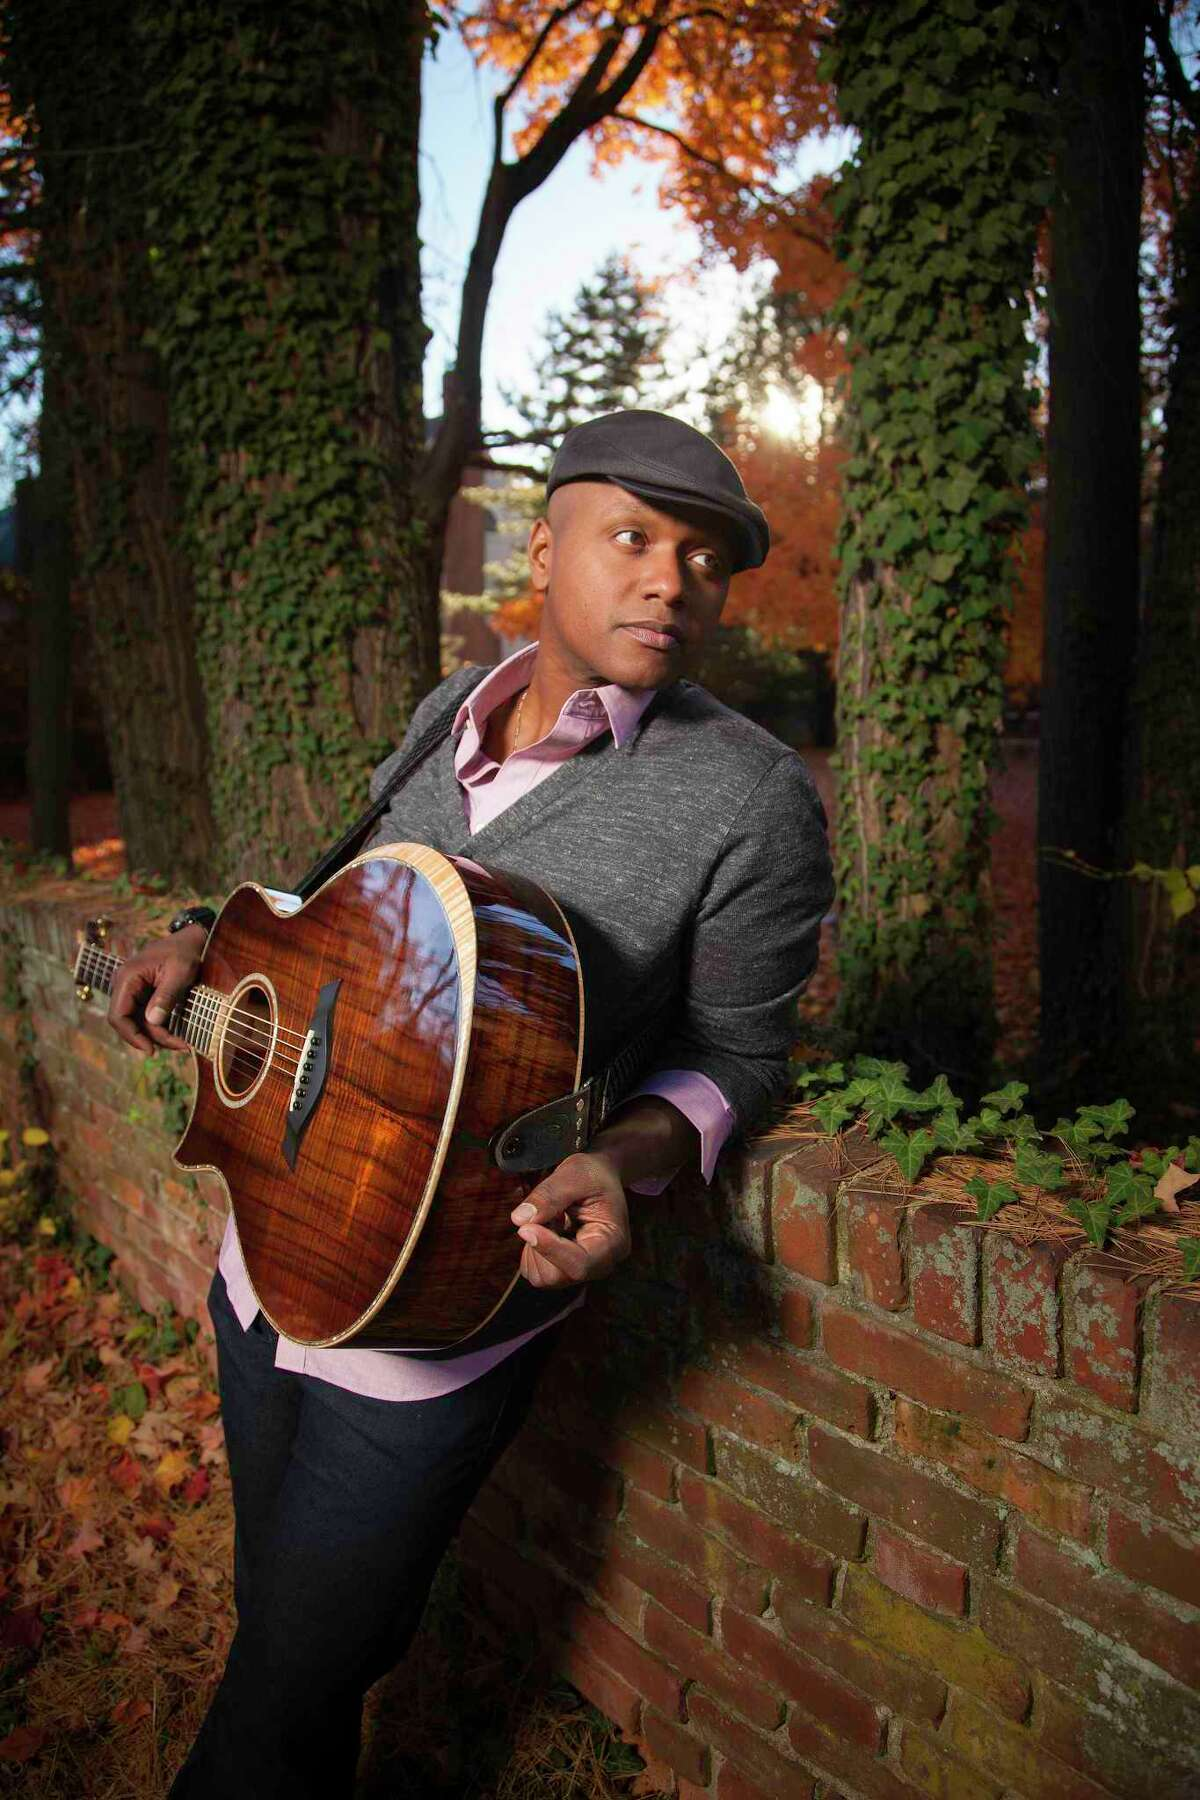 Javier Colon will perform at the Ridgefield Playhouse on Aug. 29.